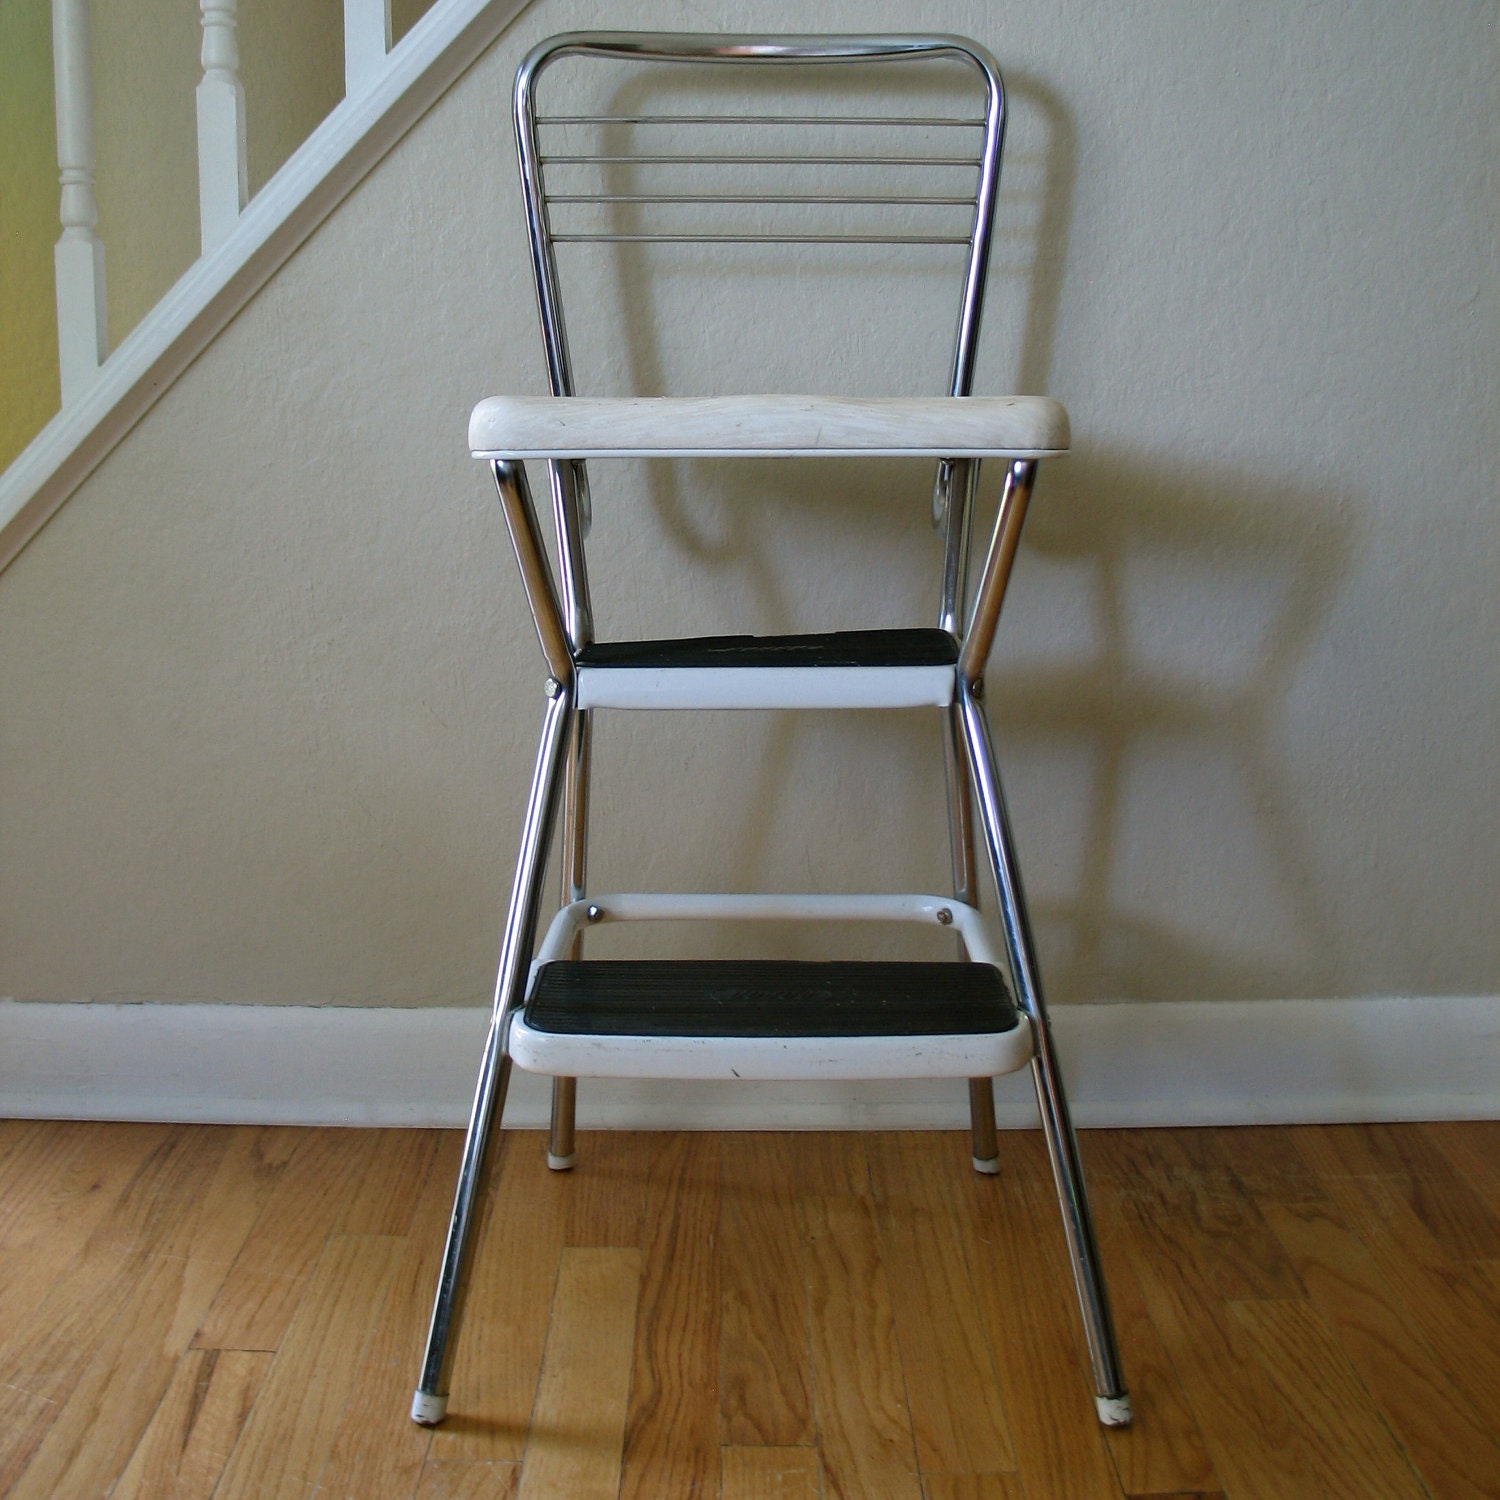 Vintage cosco chair step stool for Stool chair